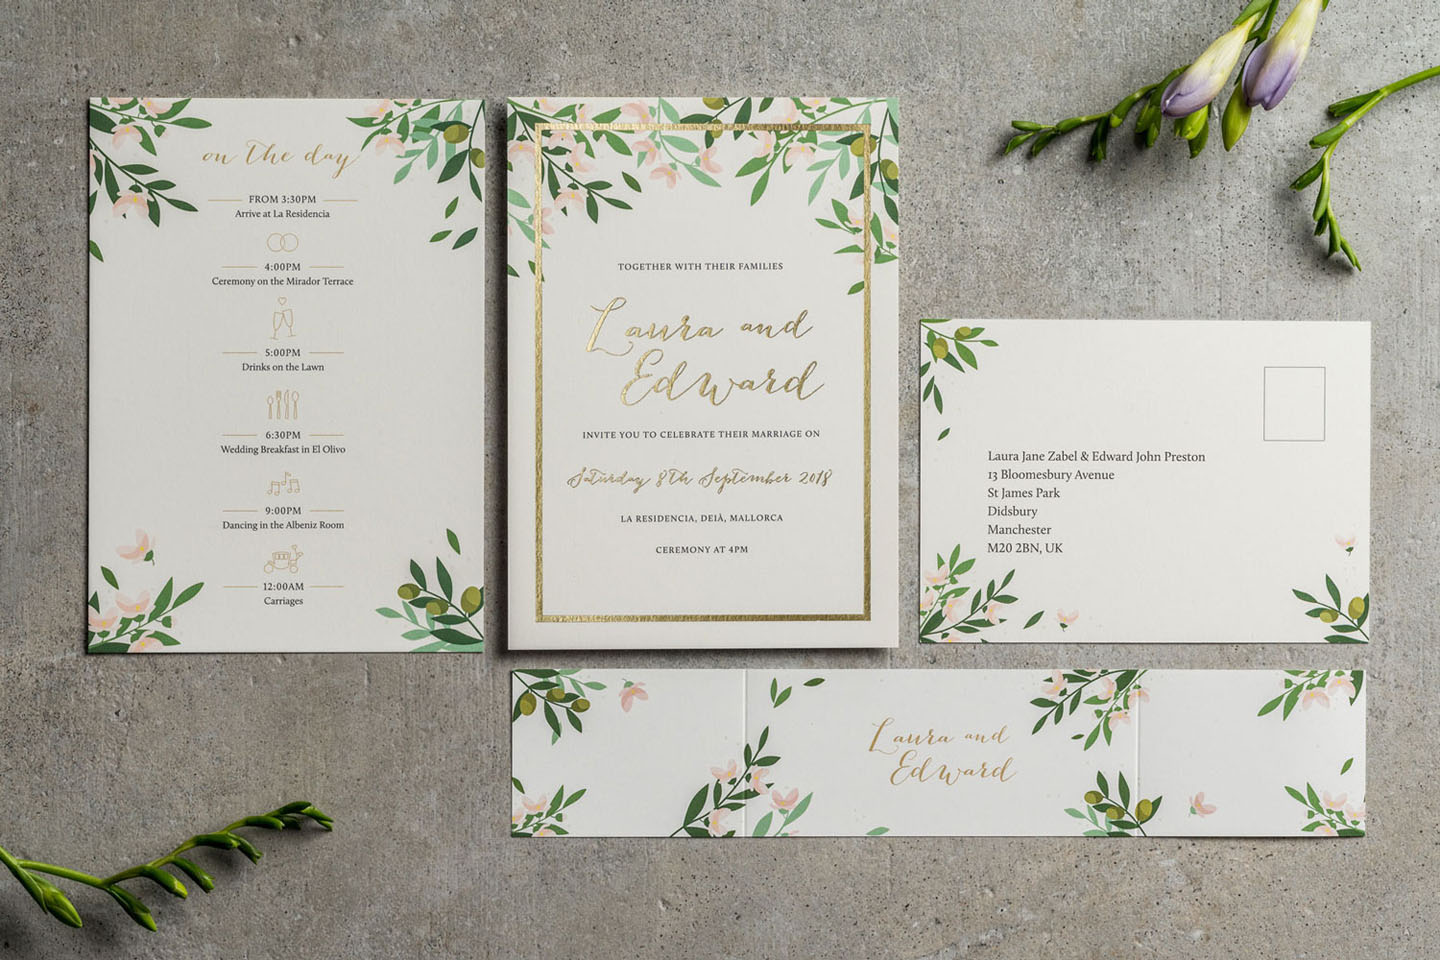 Foil Wedding Invitations - Choose Your Own Flowers Wedding Invitations - Autumn Flowers - Fall Wedding - Autumn Wedding Ideas - Luxury Wedding Stationery by the Foil Invite Company